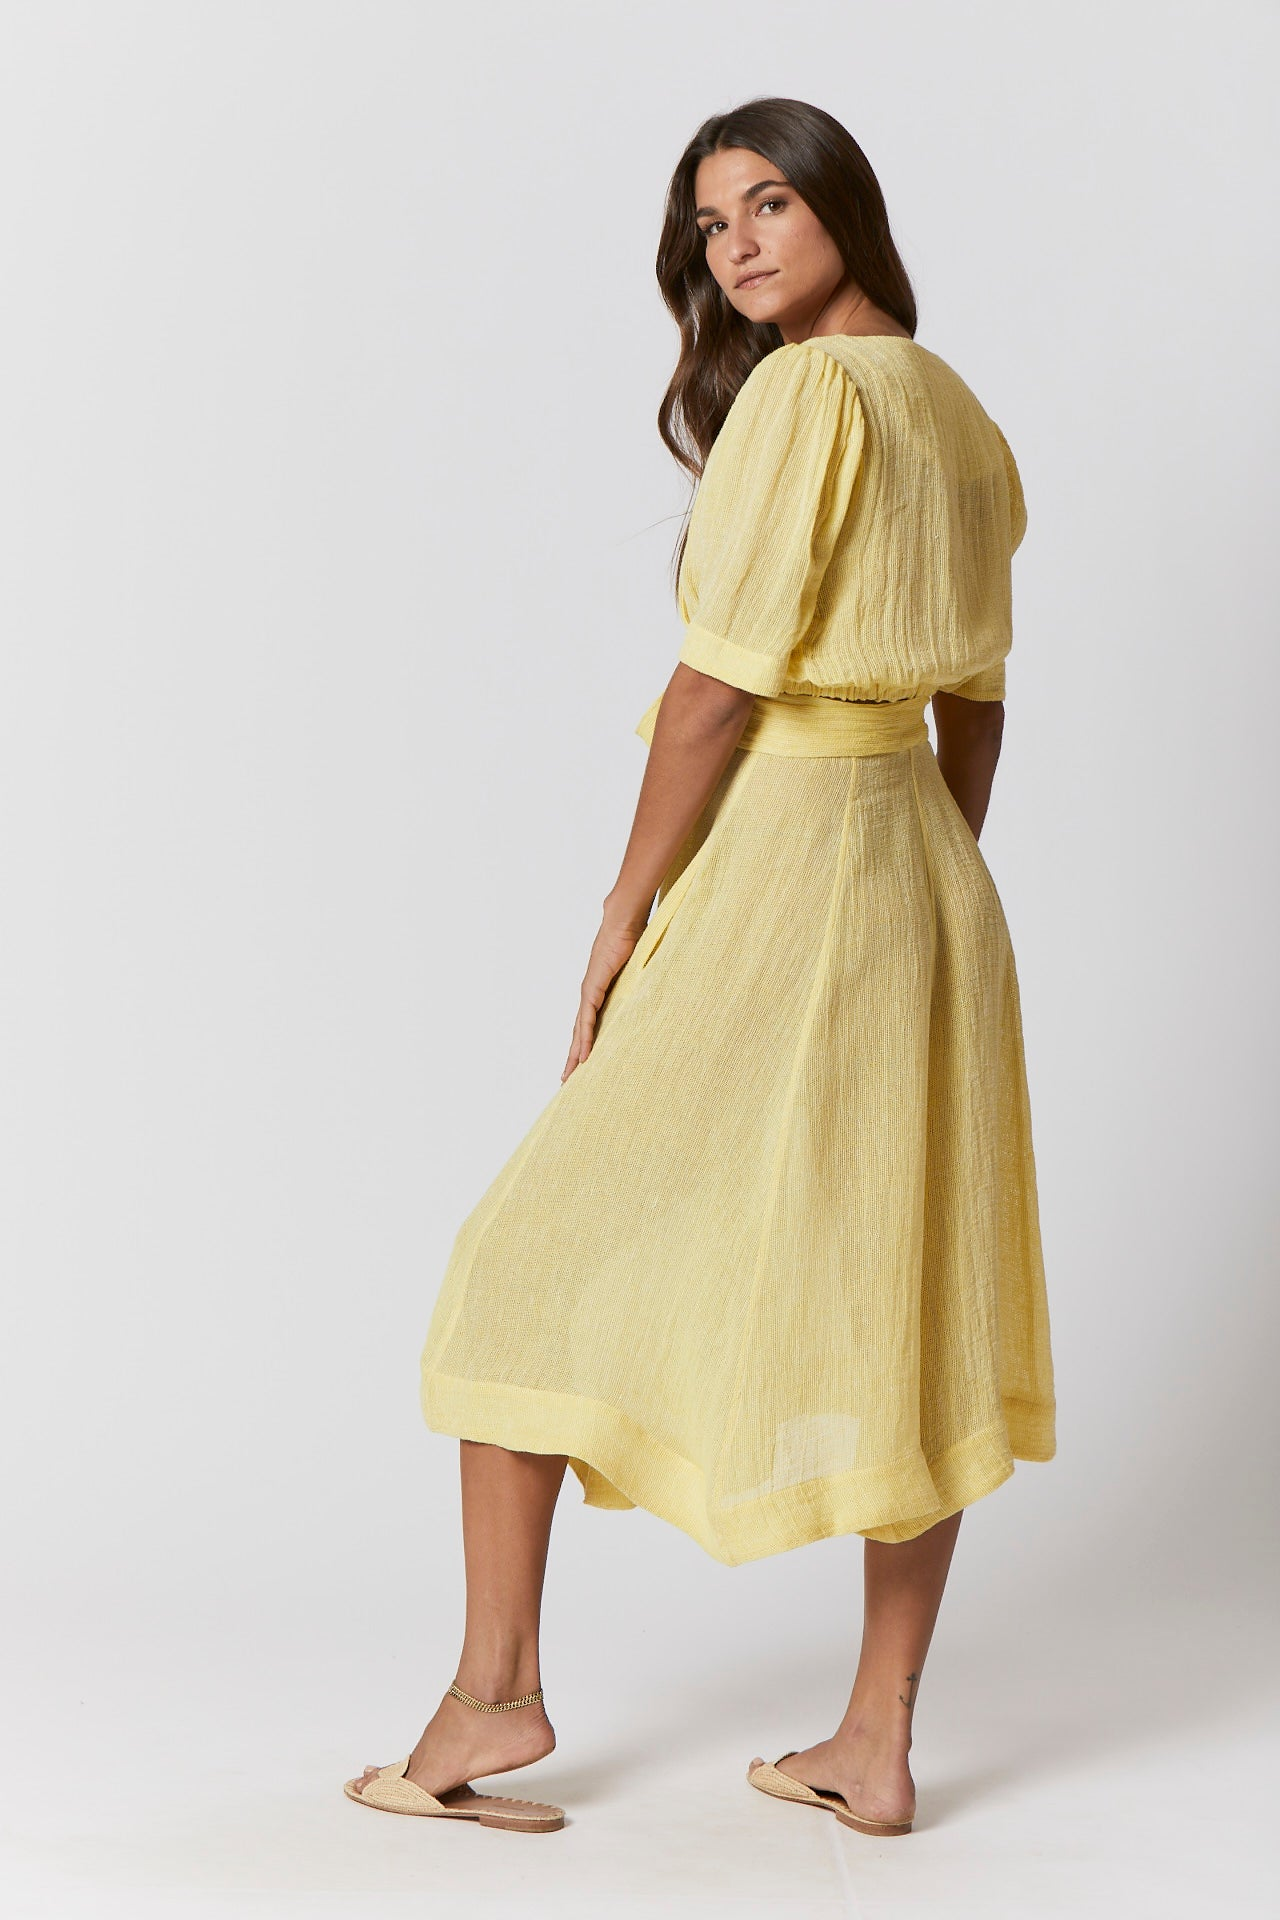 DIANA YELLOW CHIOS GAUZE SKIRT